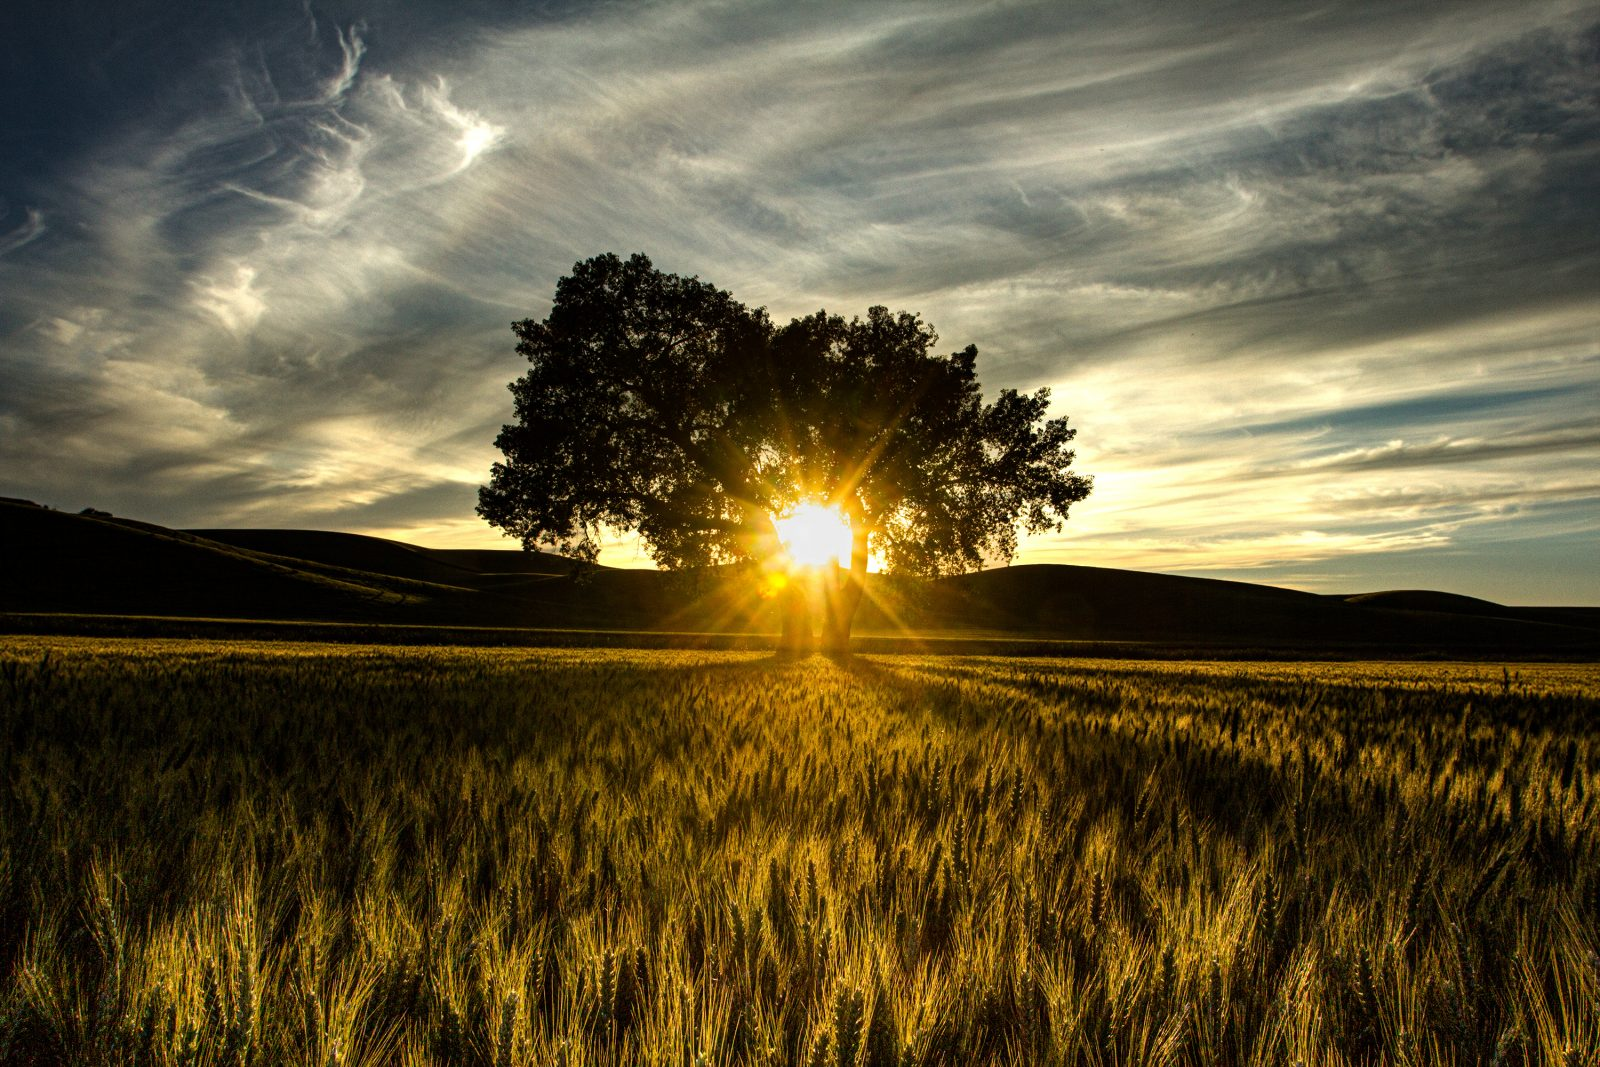 Tree with Sunburst and Grass at Sunset